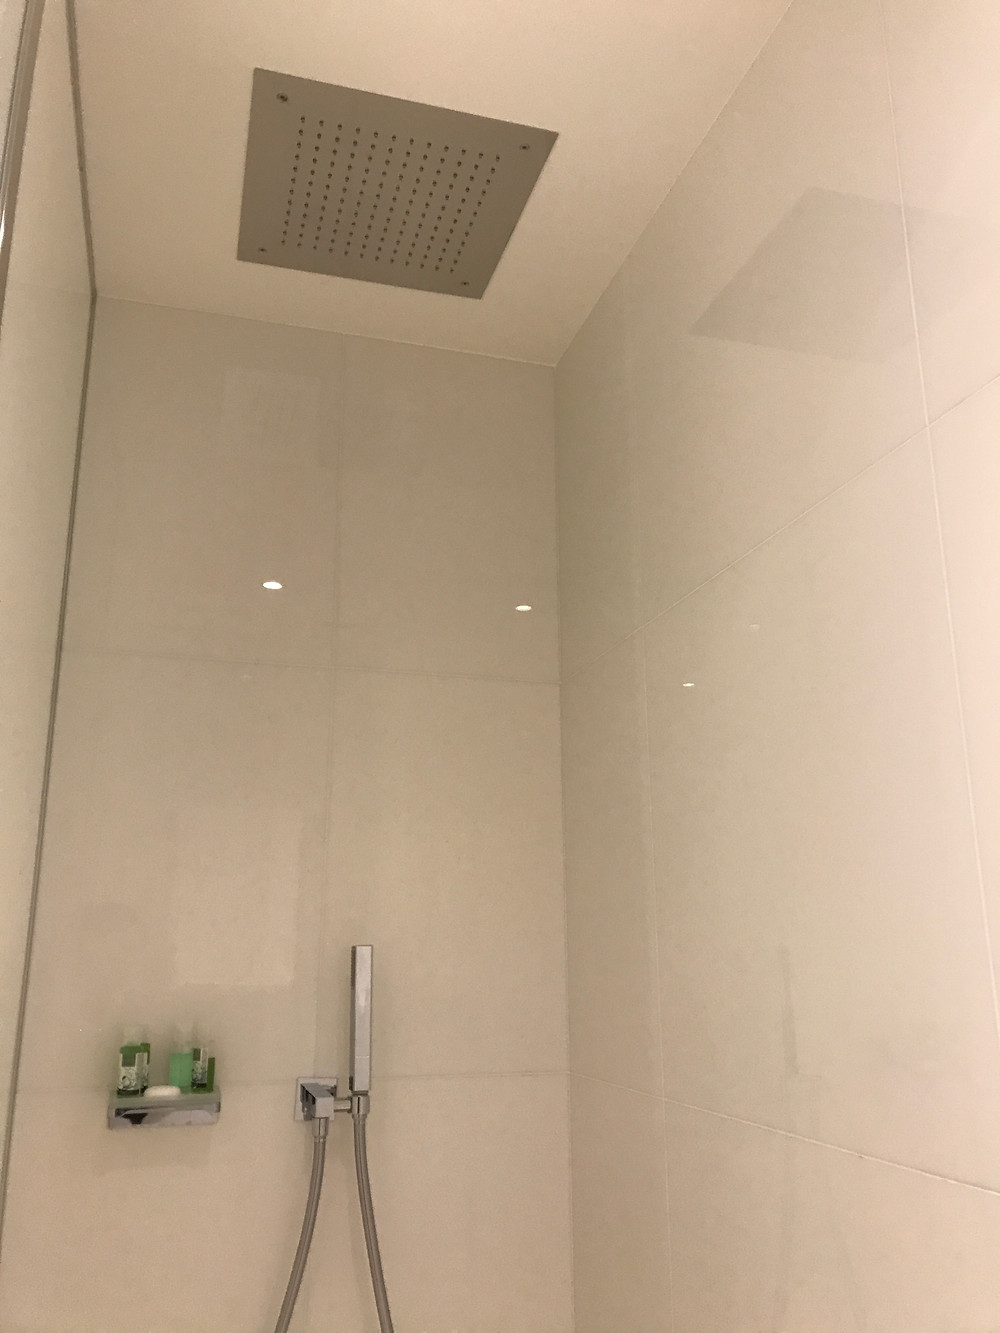 Kind of bland shower design